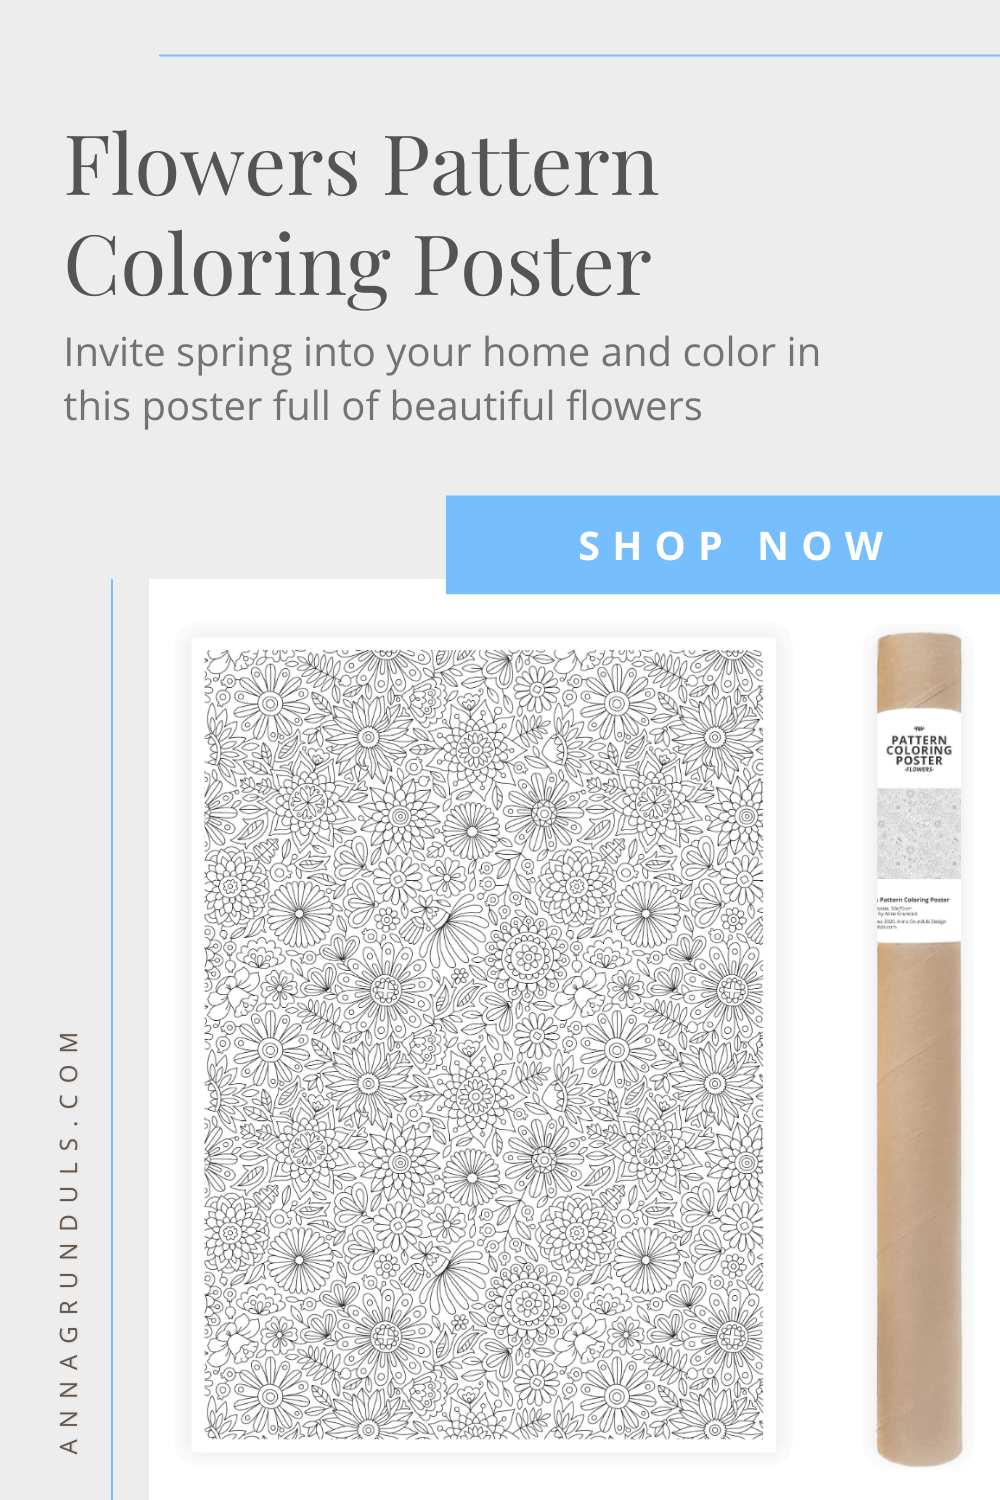 Flowers Pattern Coloring Poster Pinterest Graphic